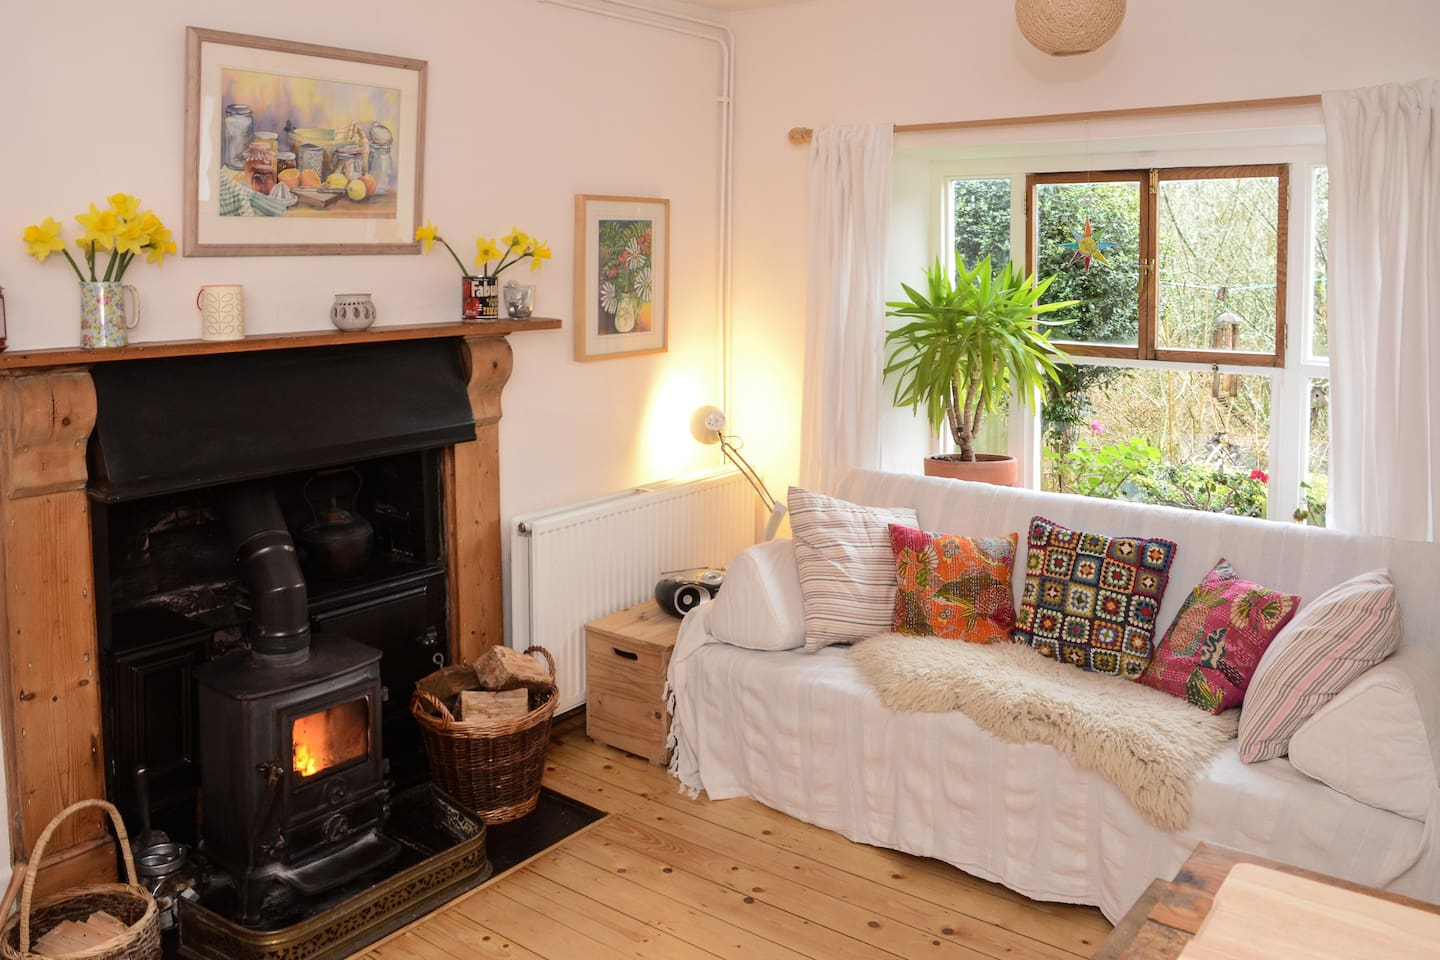 Newly decorated kitchen diner/sitting room with cosy woodburner stove!